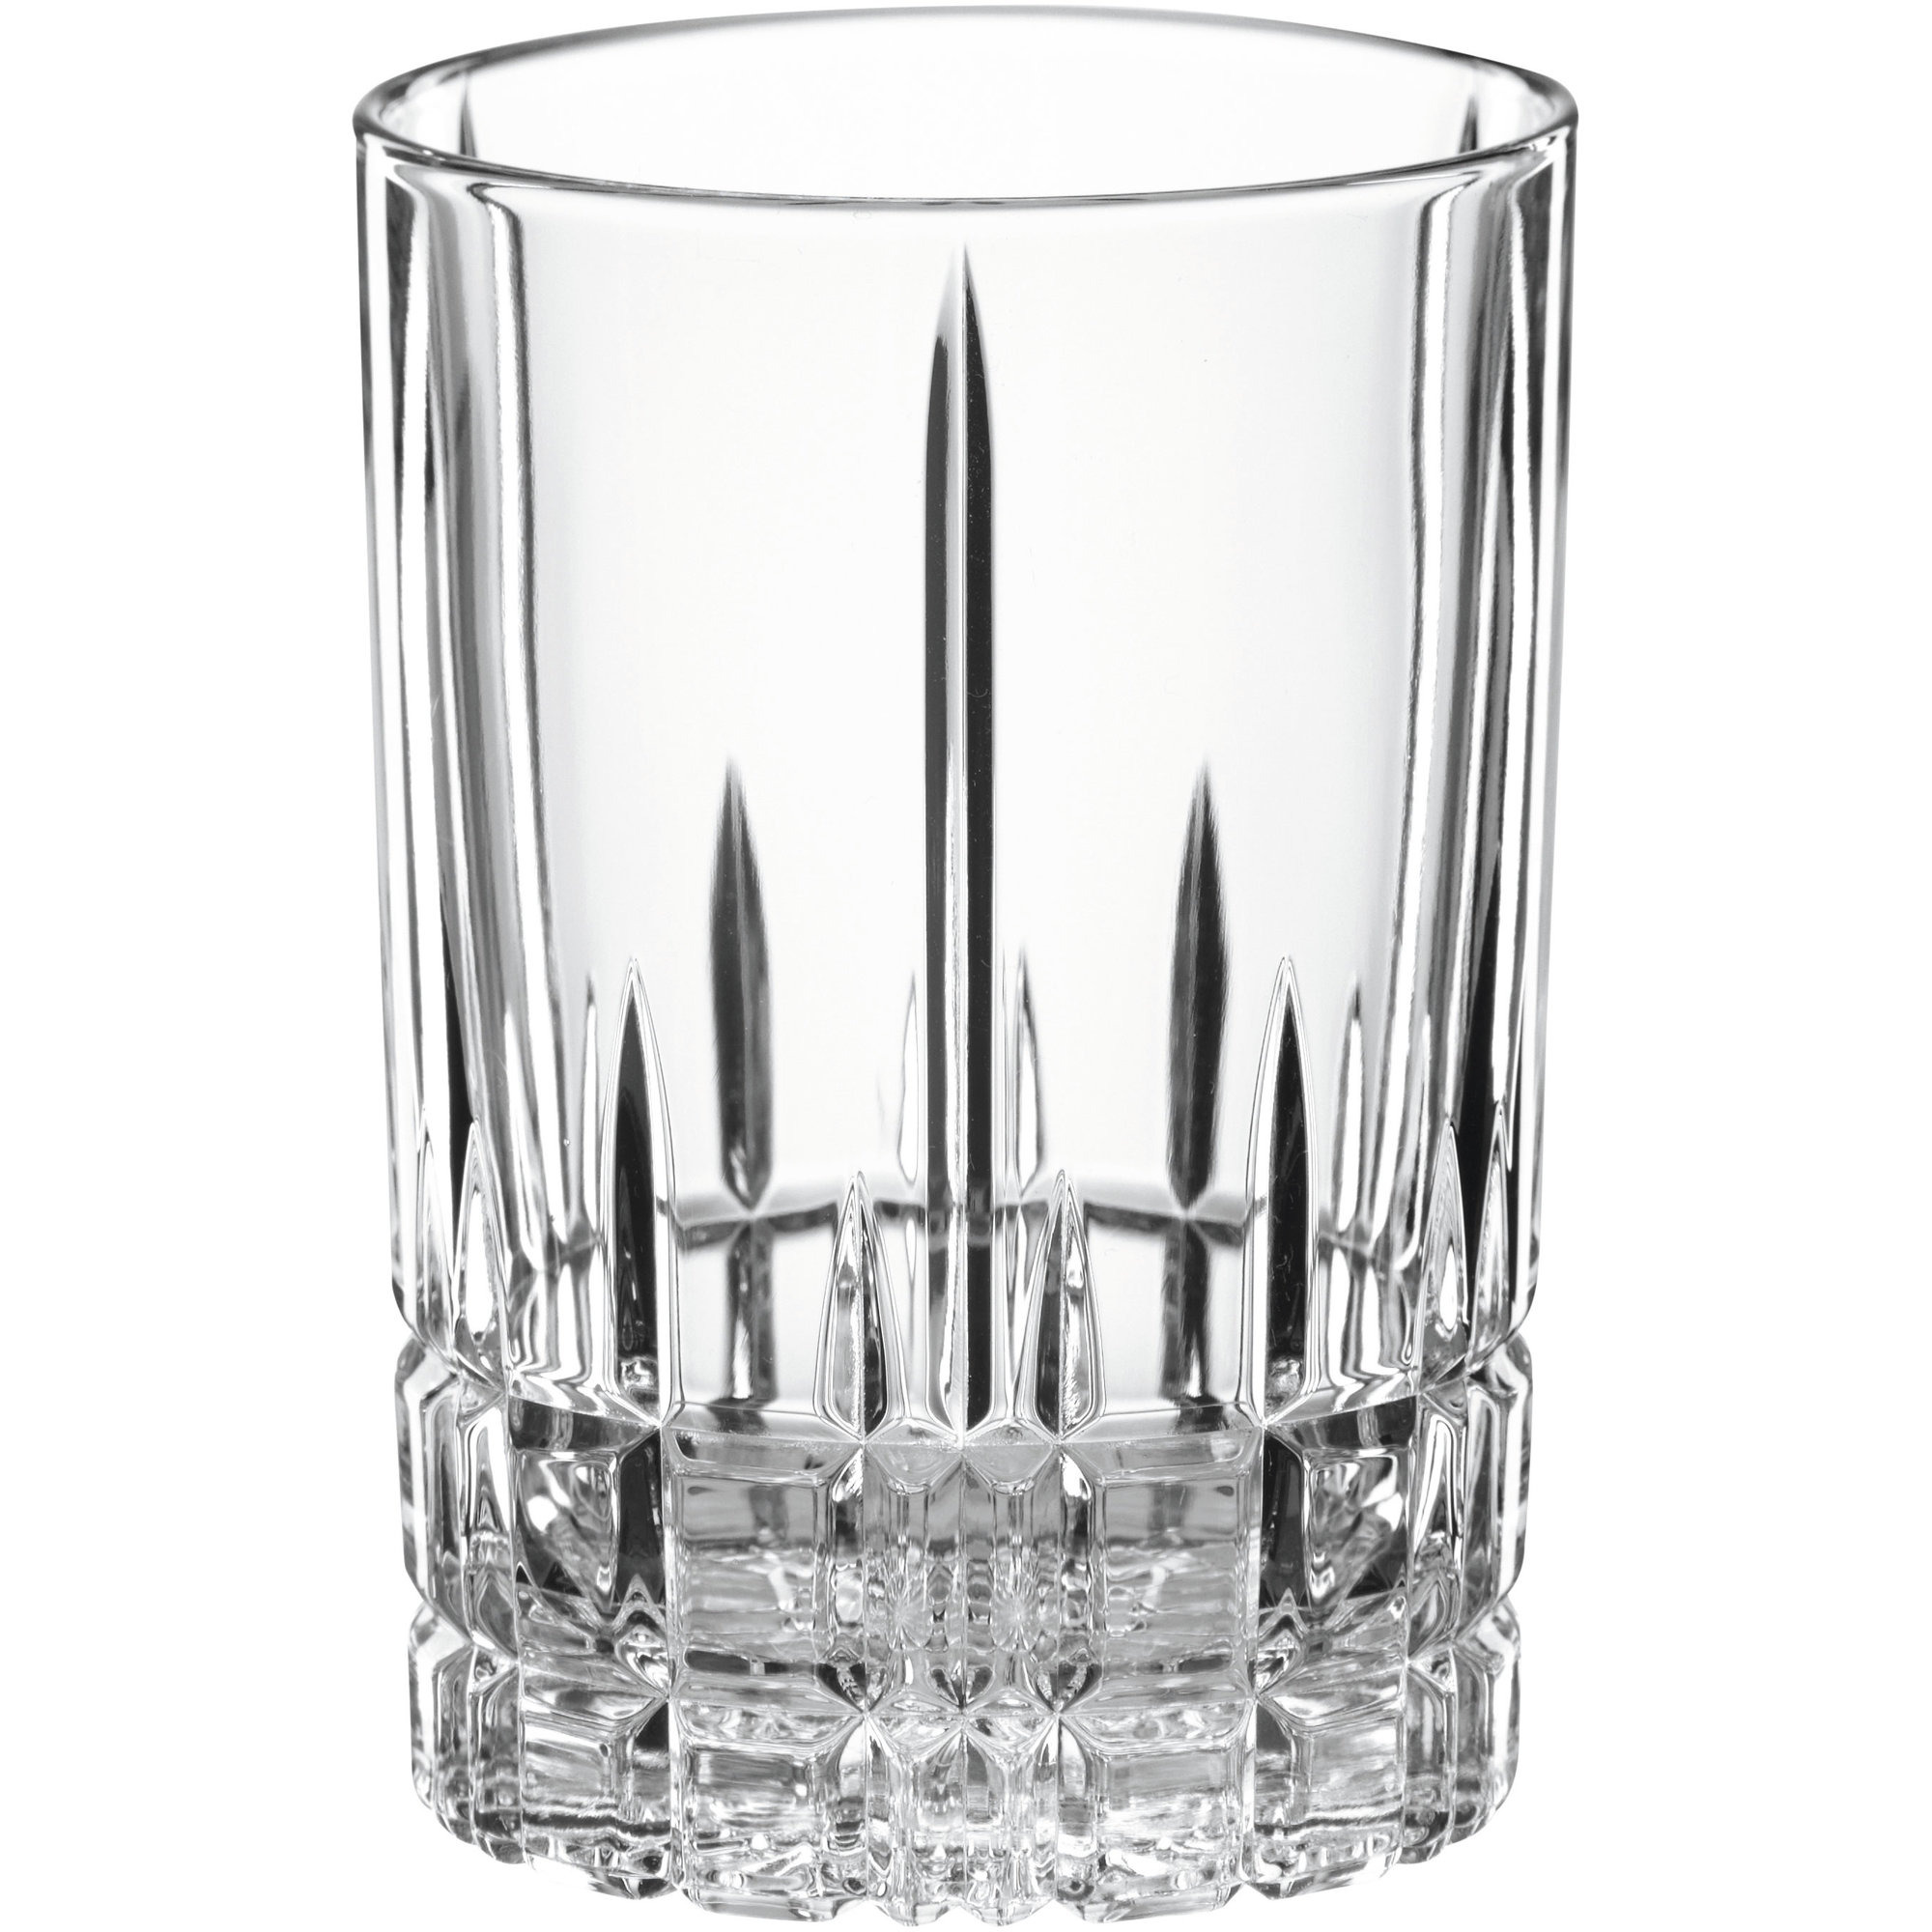 Spiegelau Perfect Small Longdrinkglas 24cl 4-p